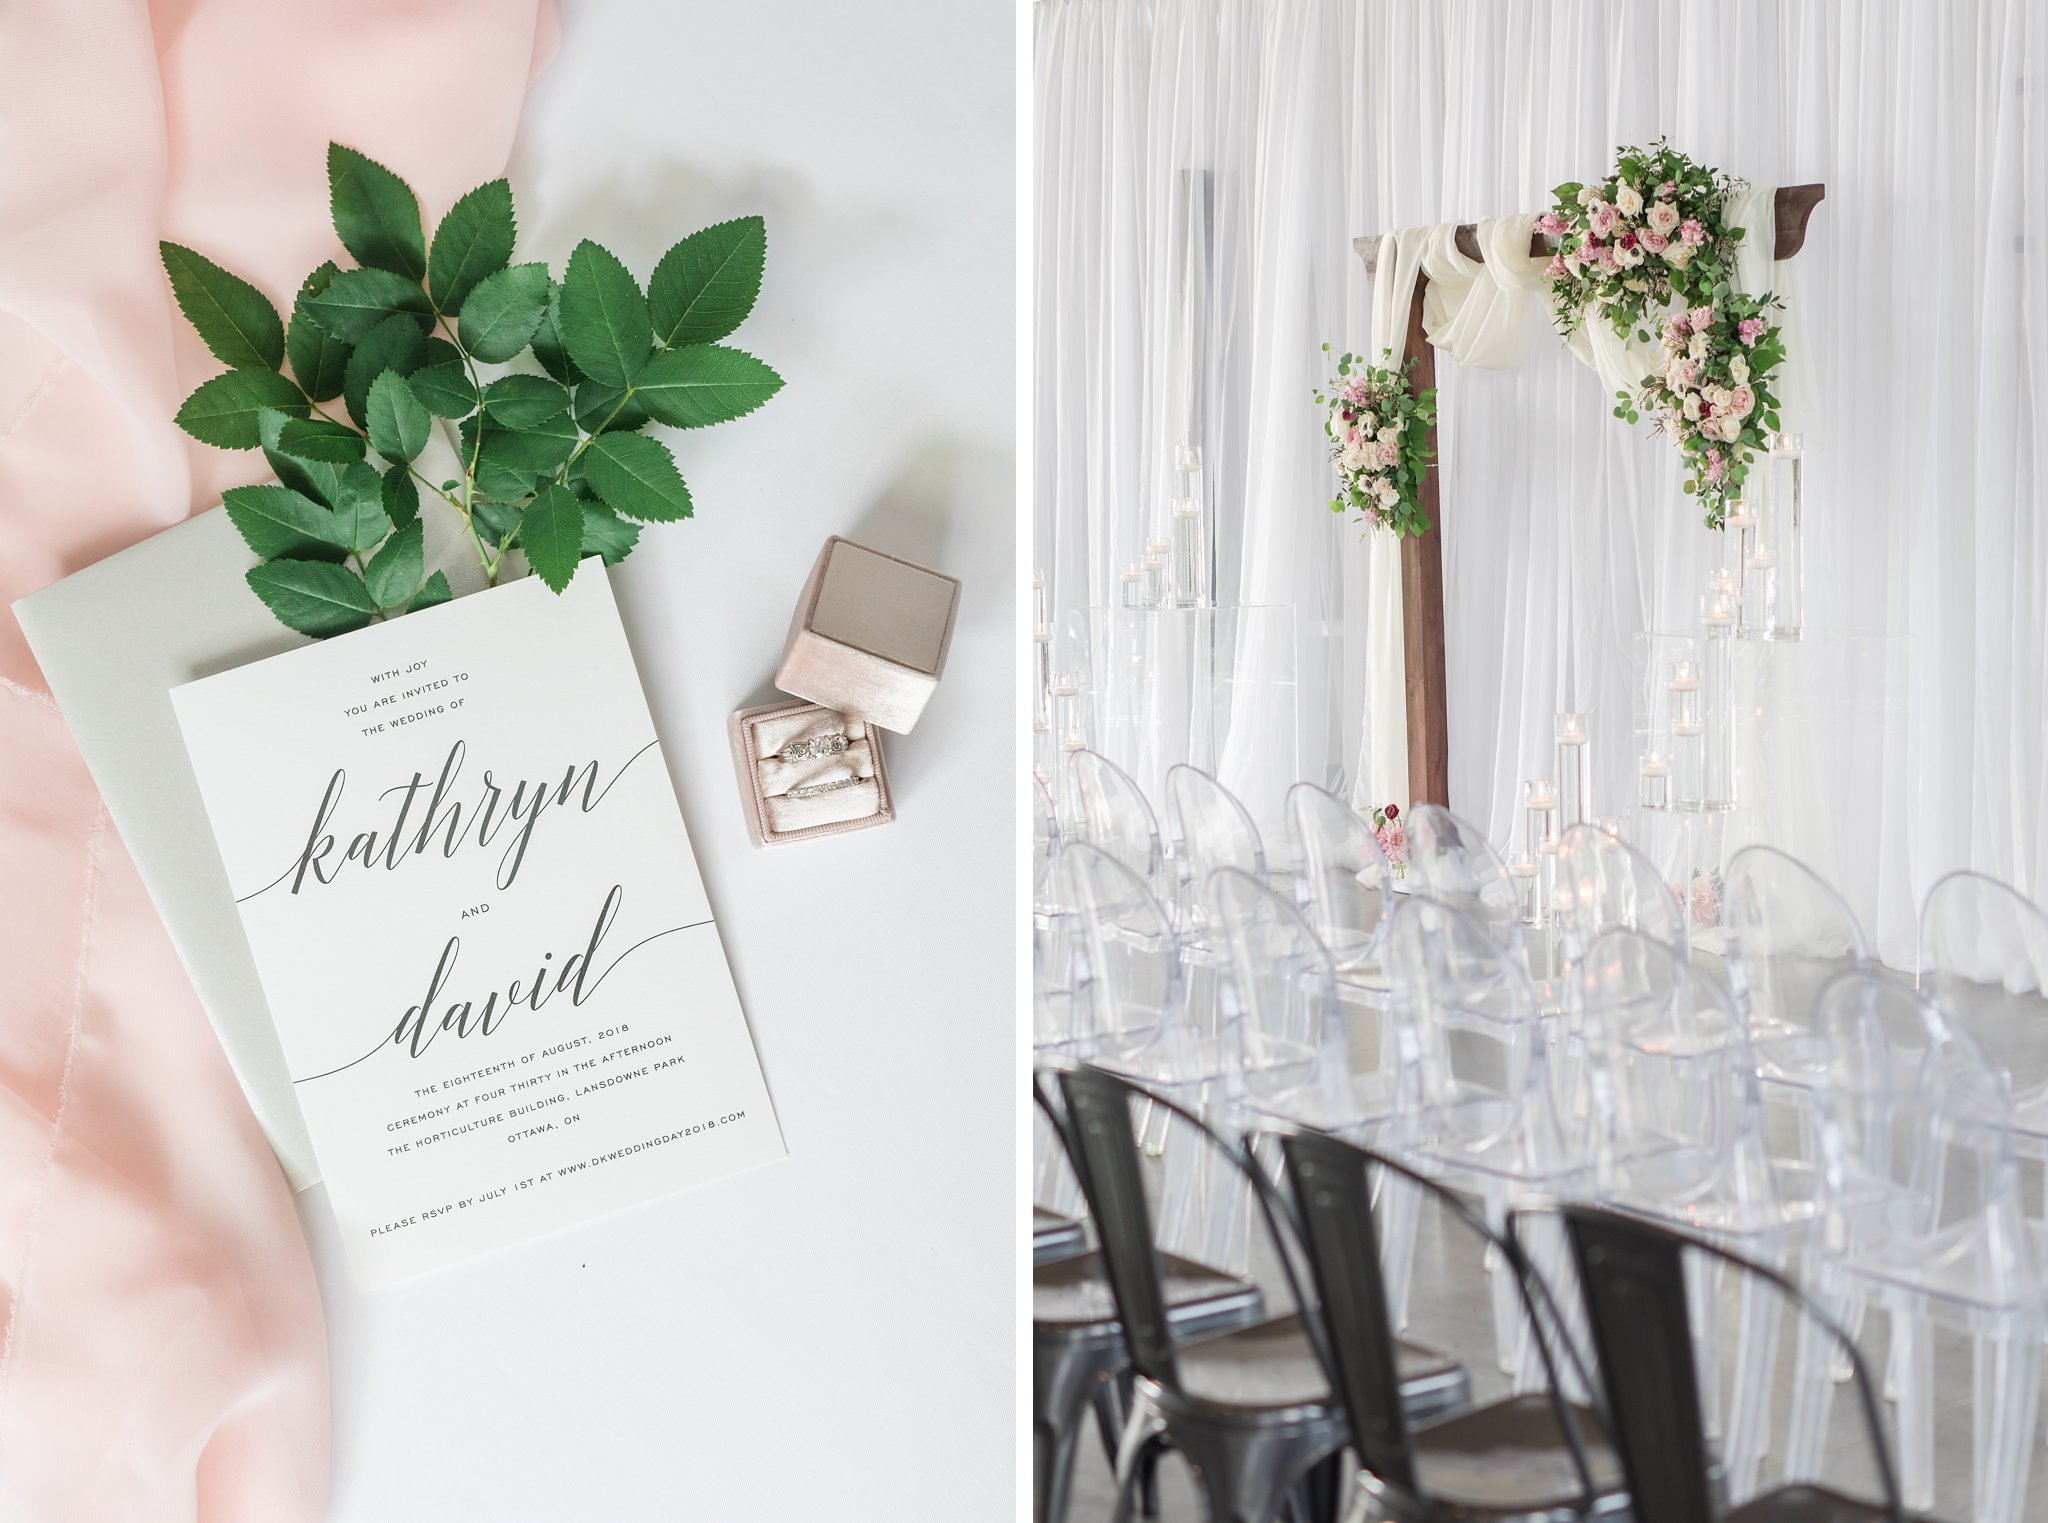 Modern industrial Horticulture Building wedding at Lansdowne Amy Pinder Photography